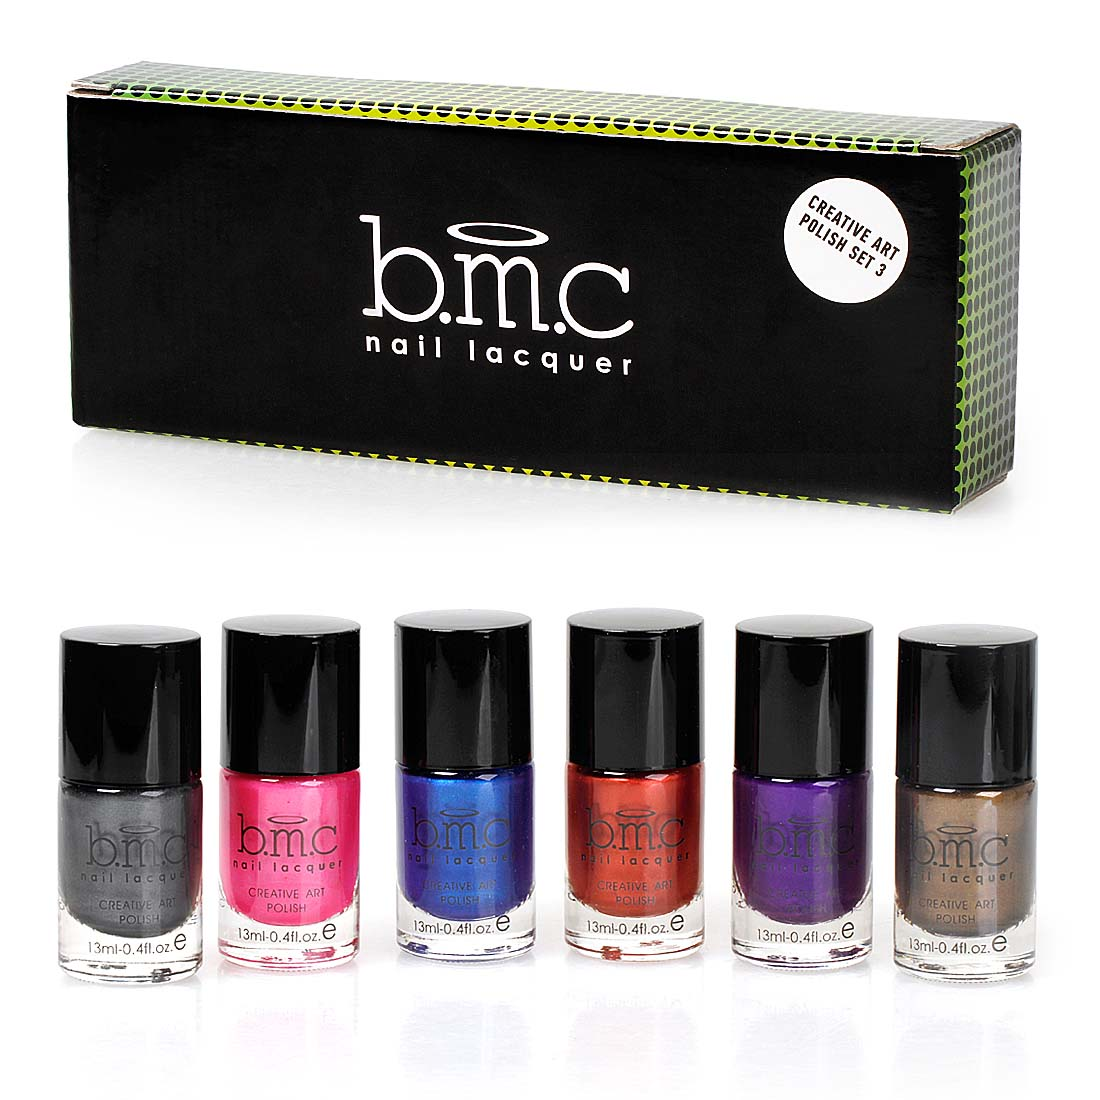 BMC Metallic Color Nail Stamping Lacquers - Creative Art Polish Collection:Set 3